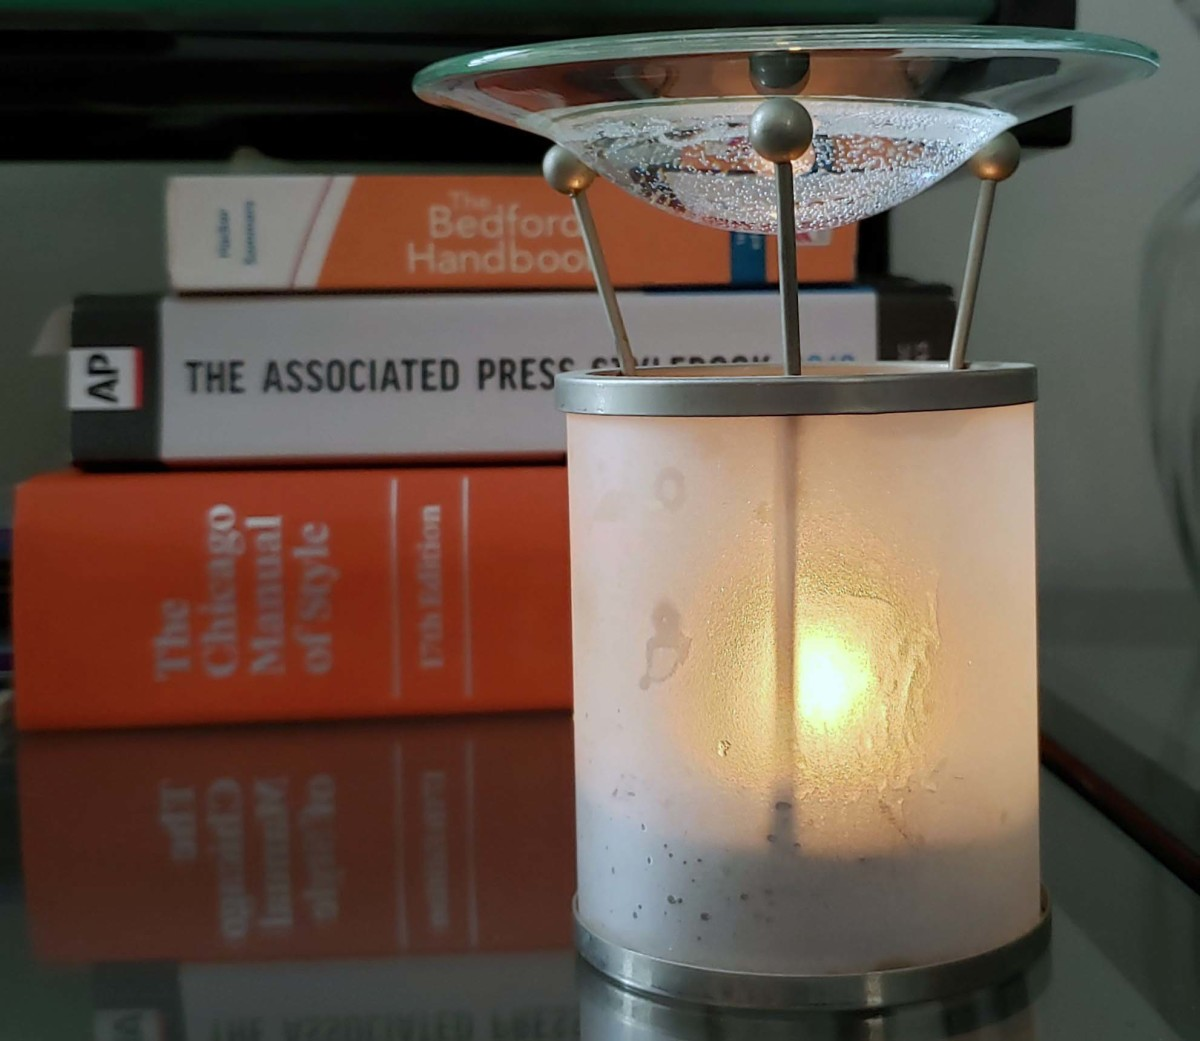 A candle-powered essential oil burner with writing reference books in the background.